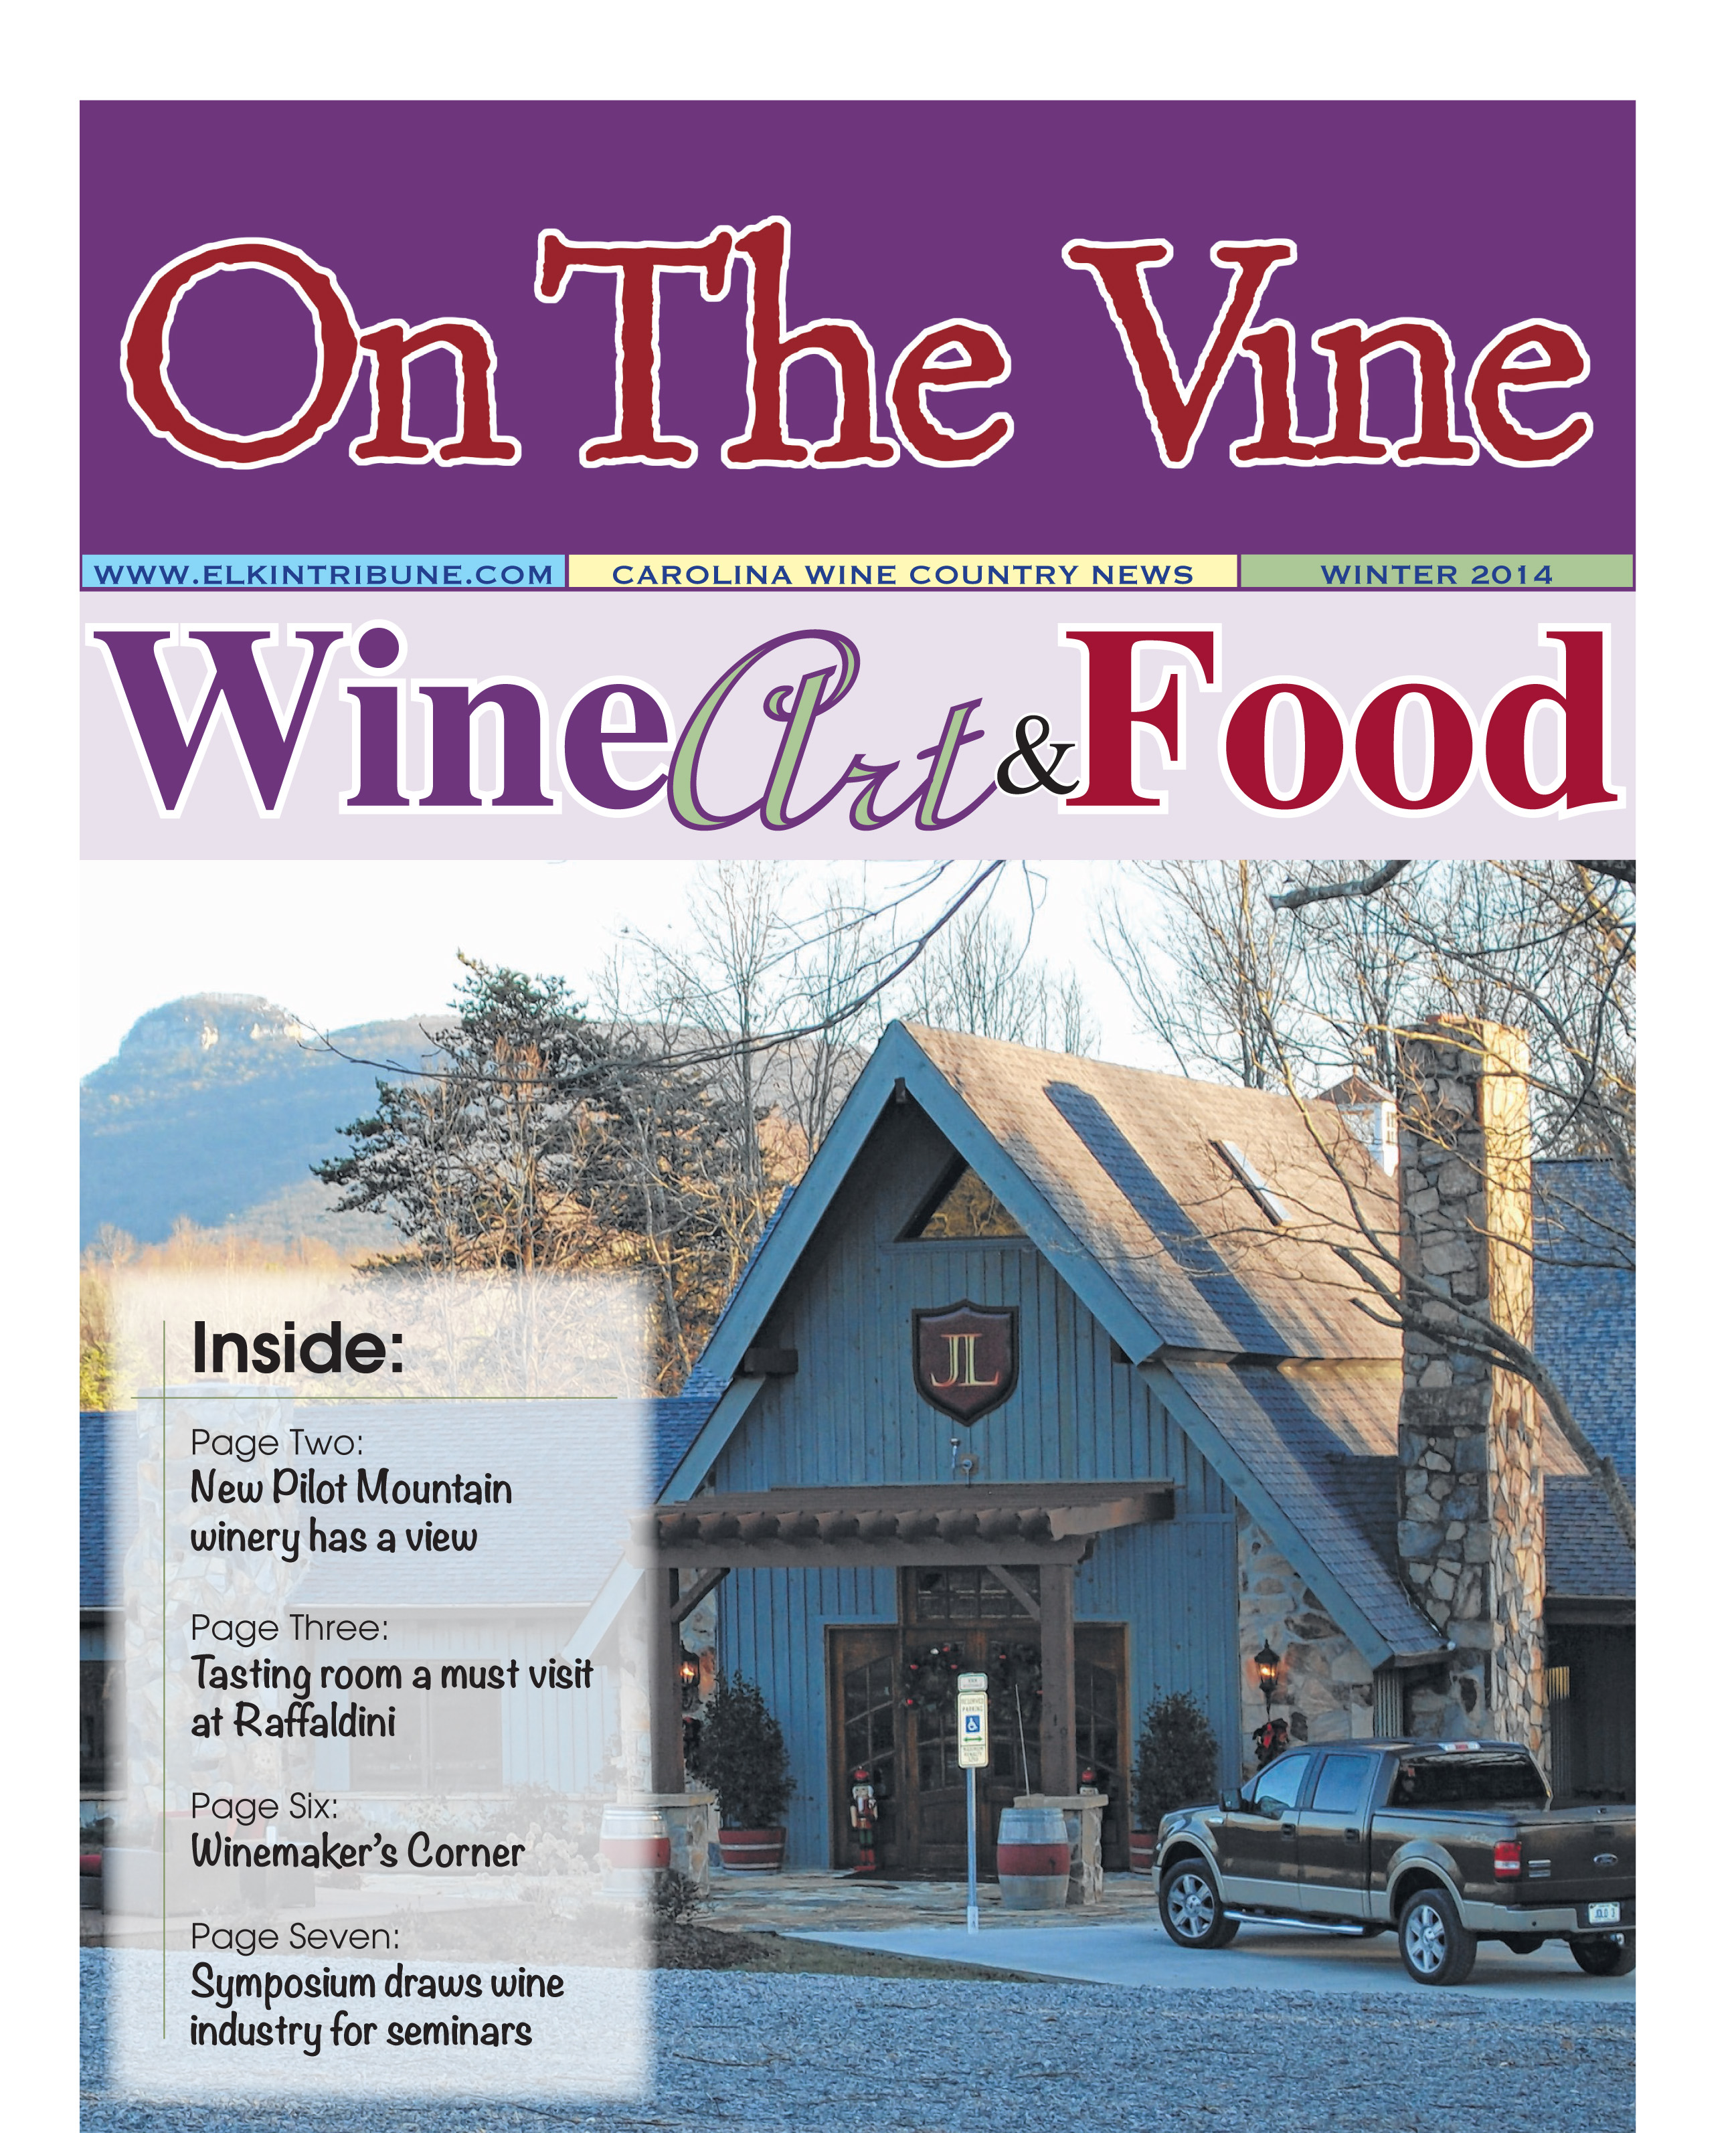 On the Vine – Winter 2014